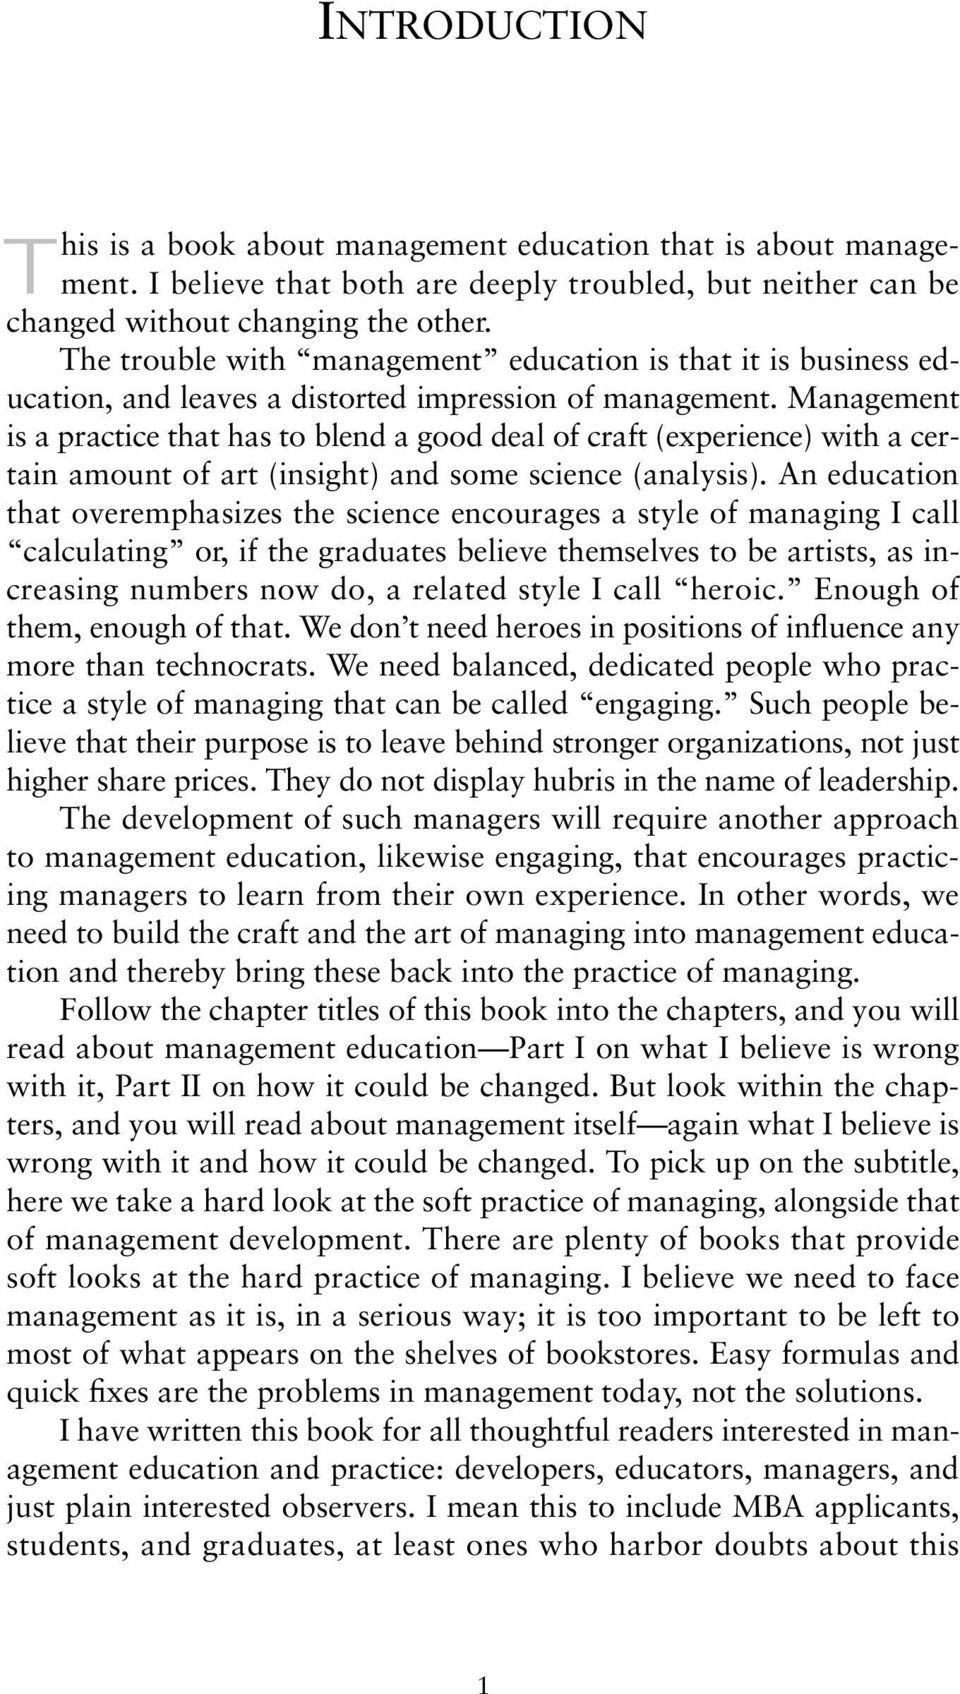 Management is a practice that has to blend a good deal of craft (experience) with a certain amount of art (insight) and some science (analysis).